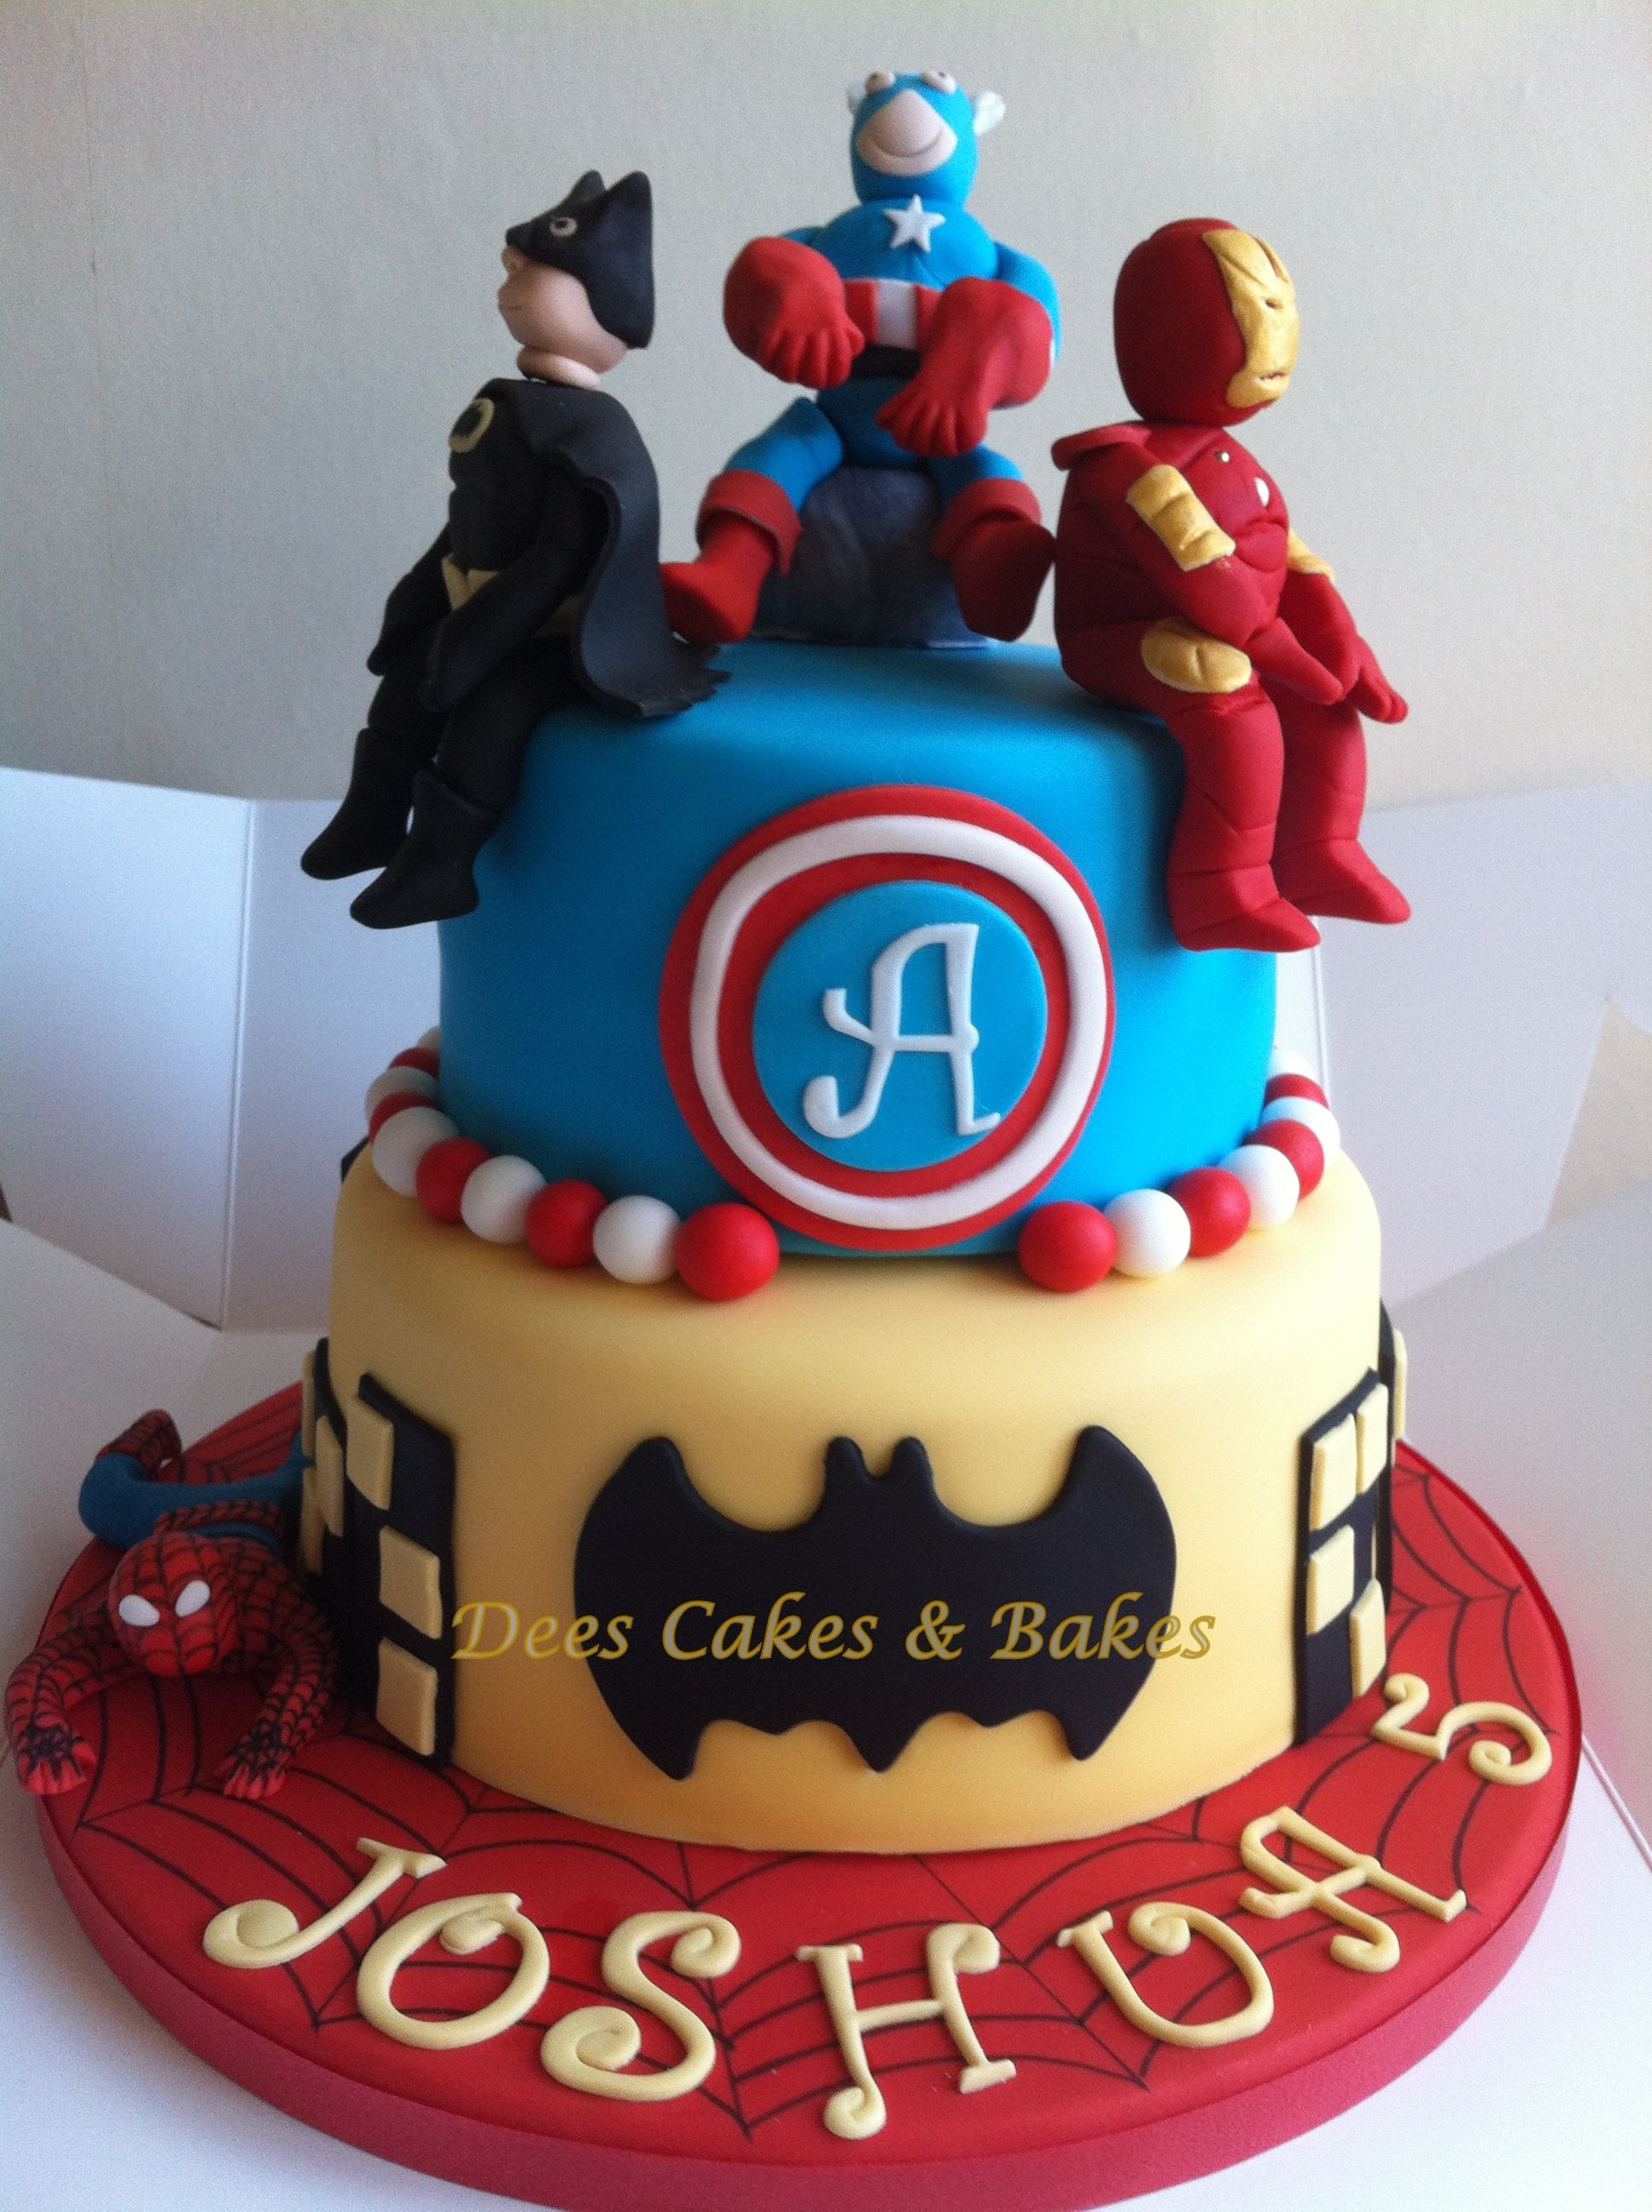 2 Tier Superhero Cake With Sugar Figures